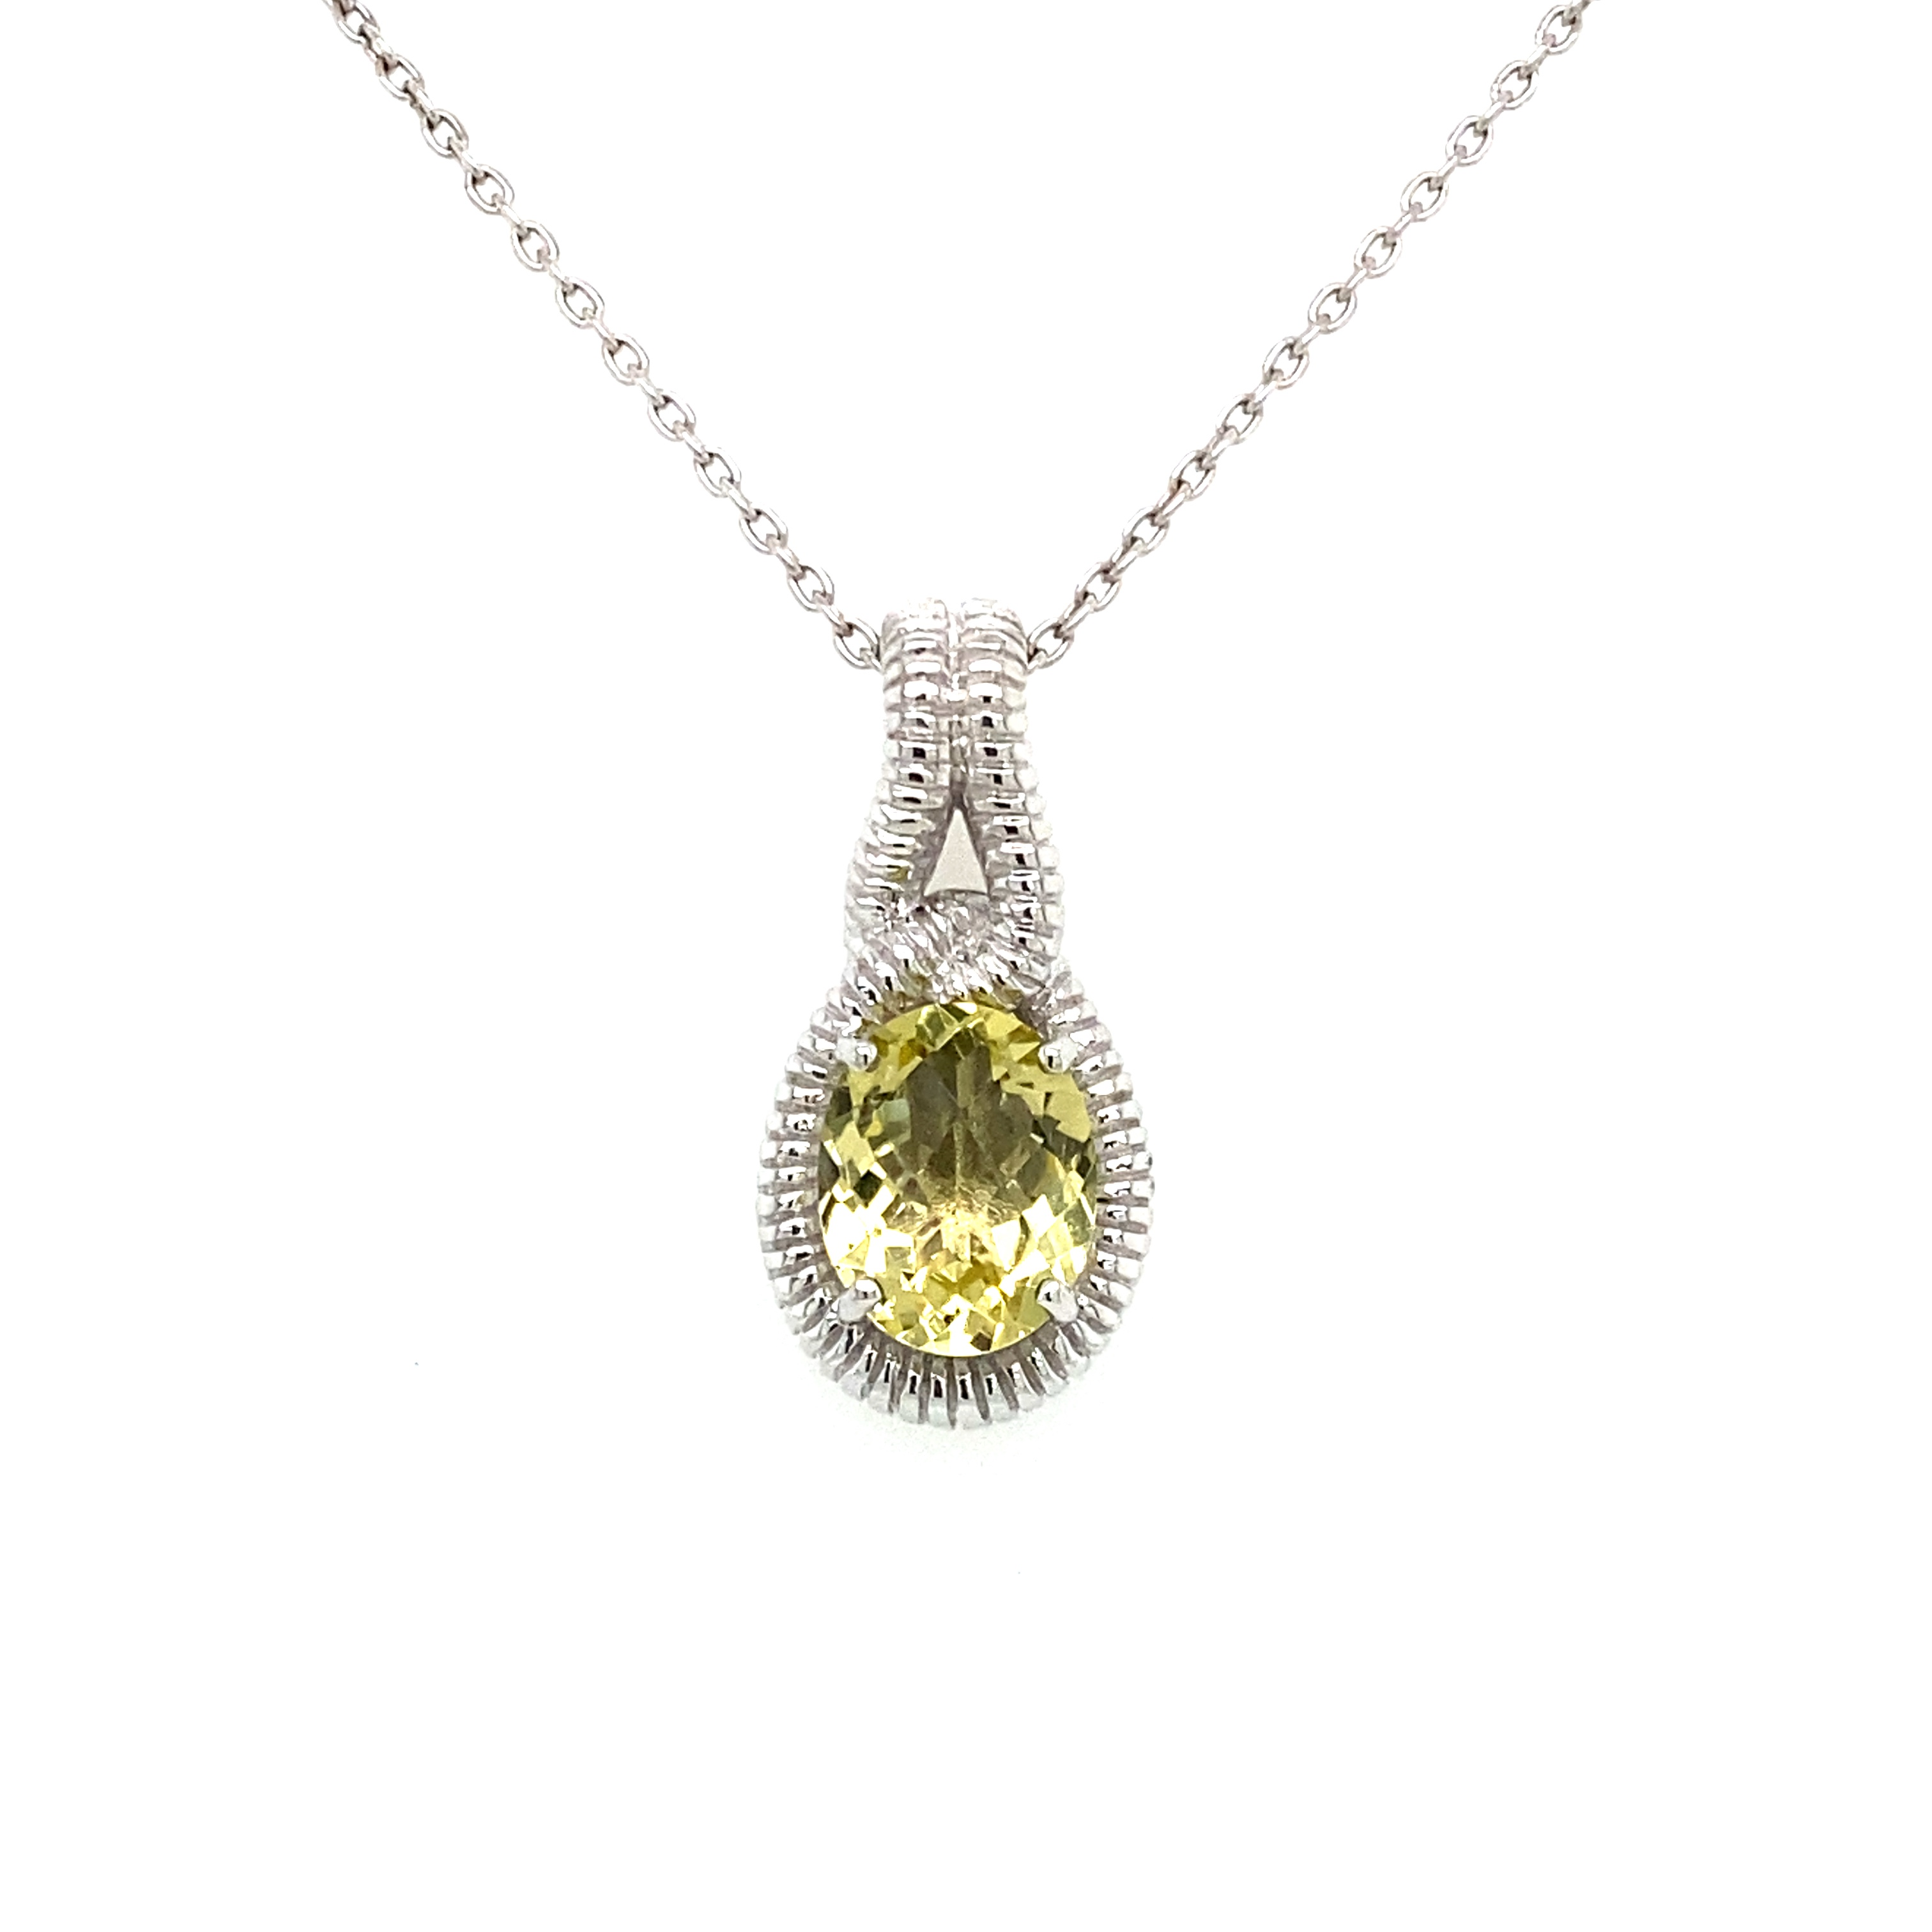 Sterling Silver and Lemon Quartz Pendant